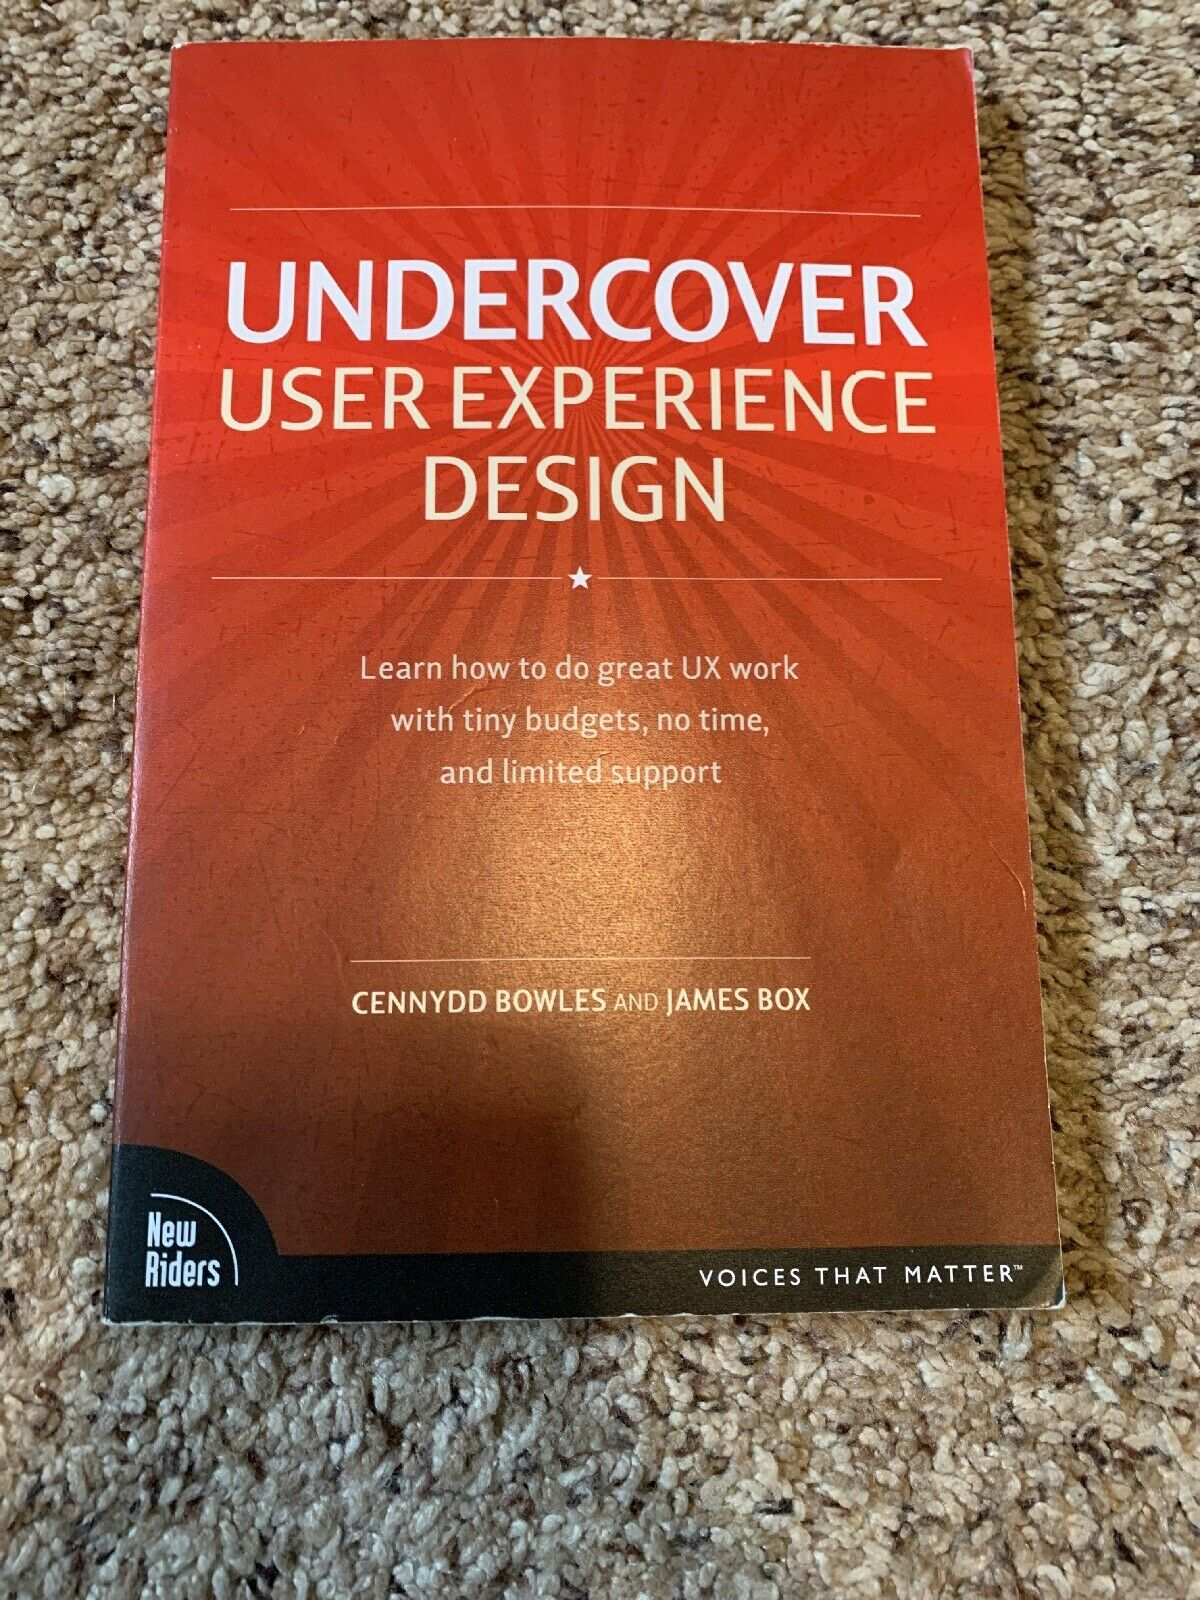 Voices That Matter Ser Undercover User Experience Design By James Box And Cennydd Bowles 2010 Trade Paperback For Sale Online Ebay